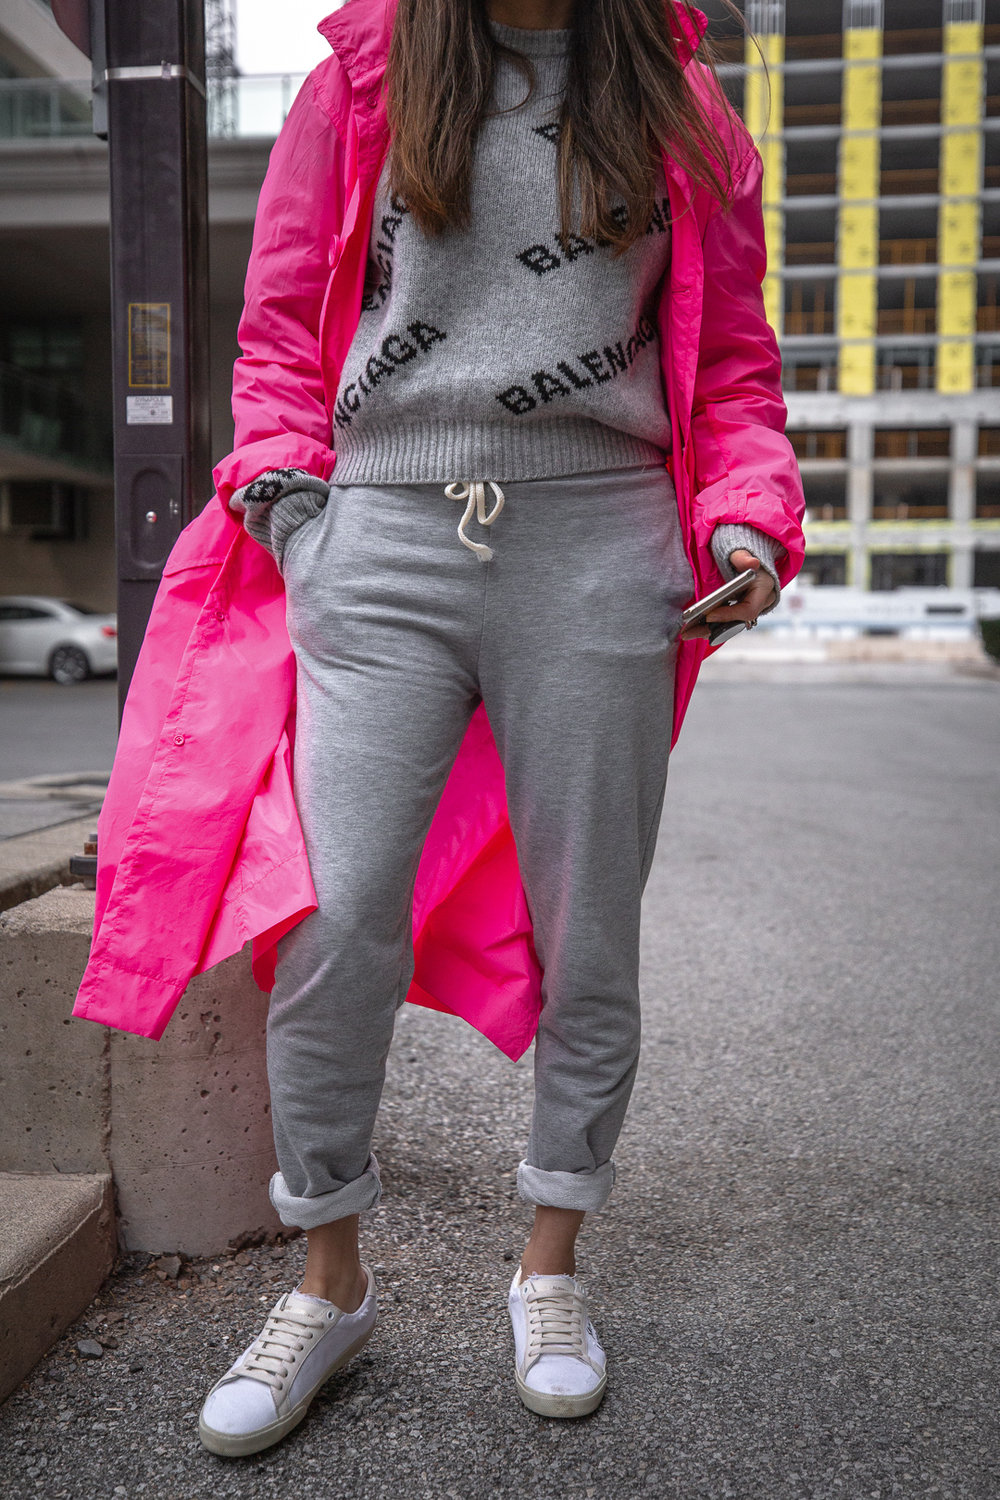 Nathalie Martin - Opening Ceremony pink nylon trench, Saint Laurent white canvas sneakers, Balenciaga logo beanie and cropped logo sweater, grey joggers, casual street style, woahstyle.com_5522.jpg